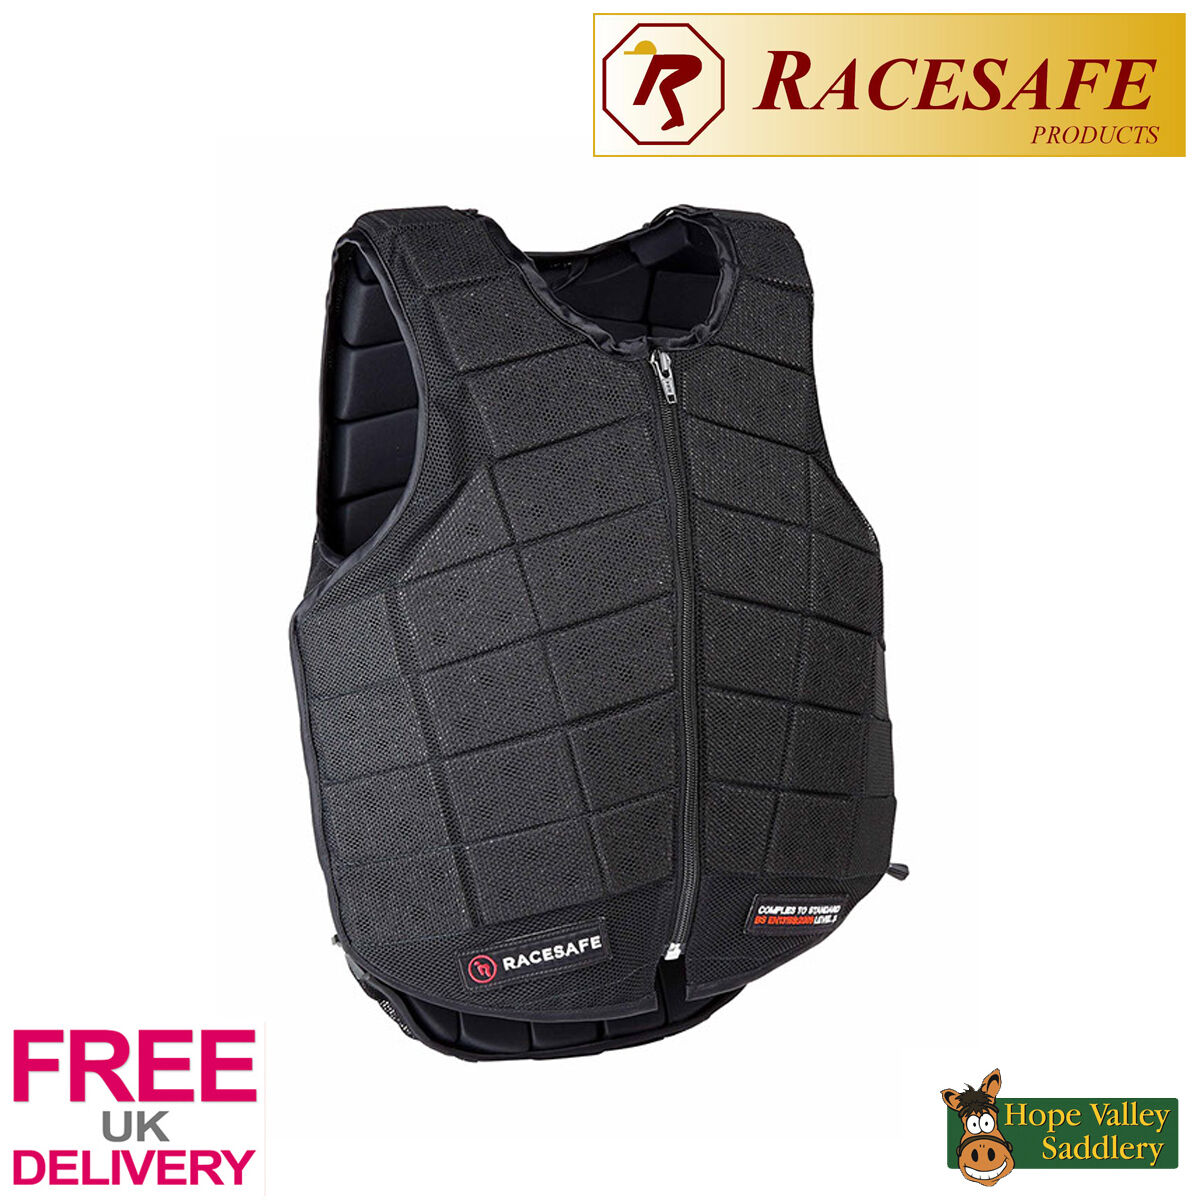 Racesafe Adult Provent UK 3 Body Protector FREE UK Provent Shipping 6535eb